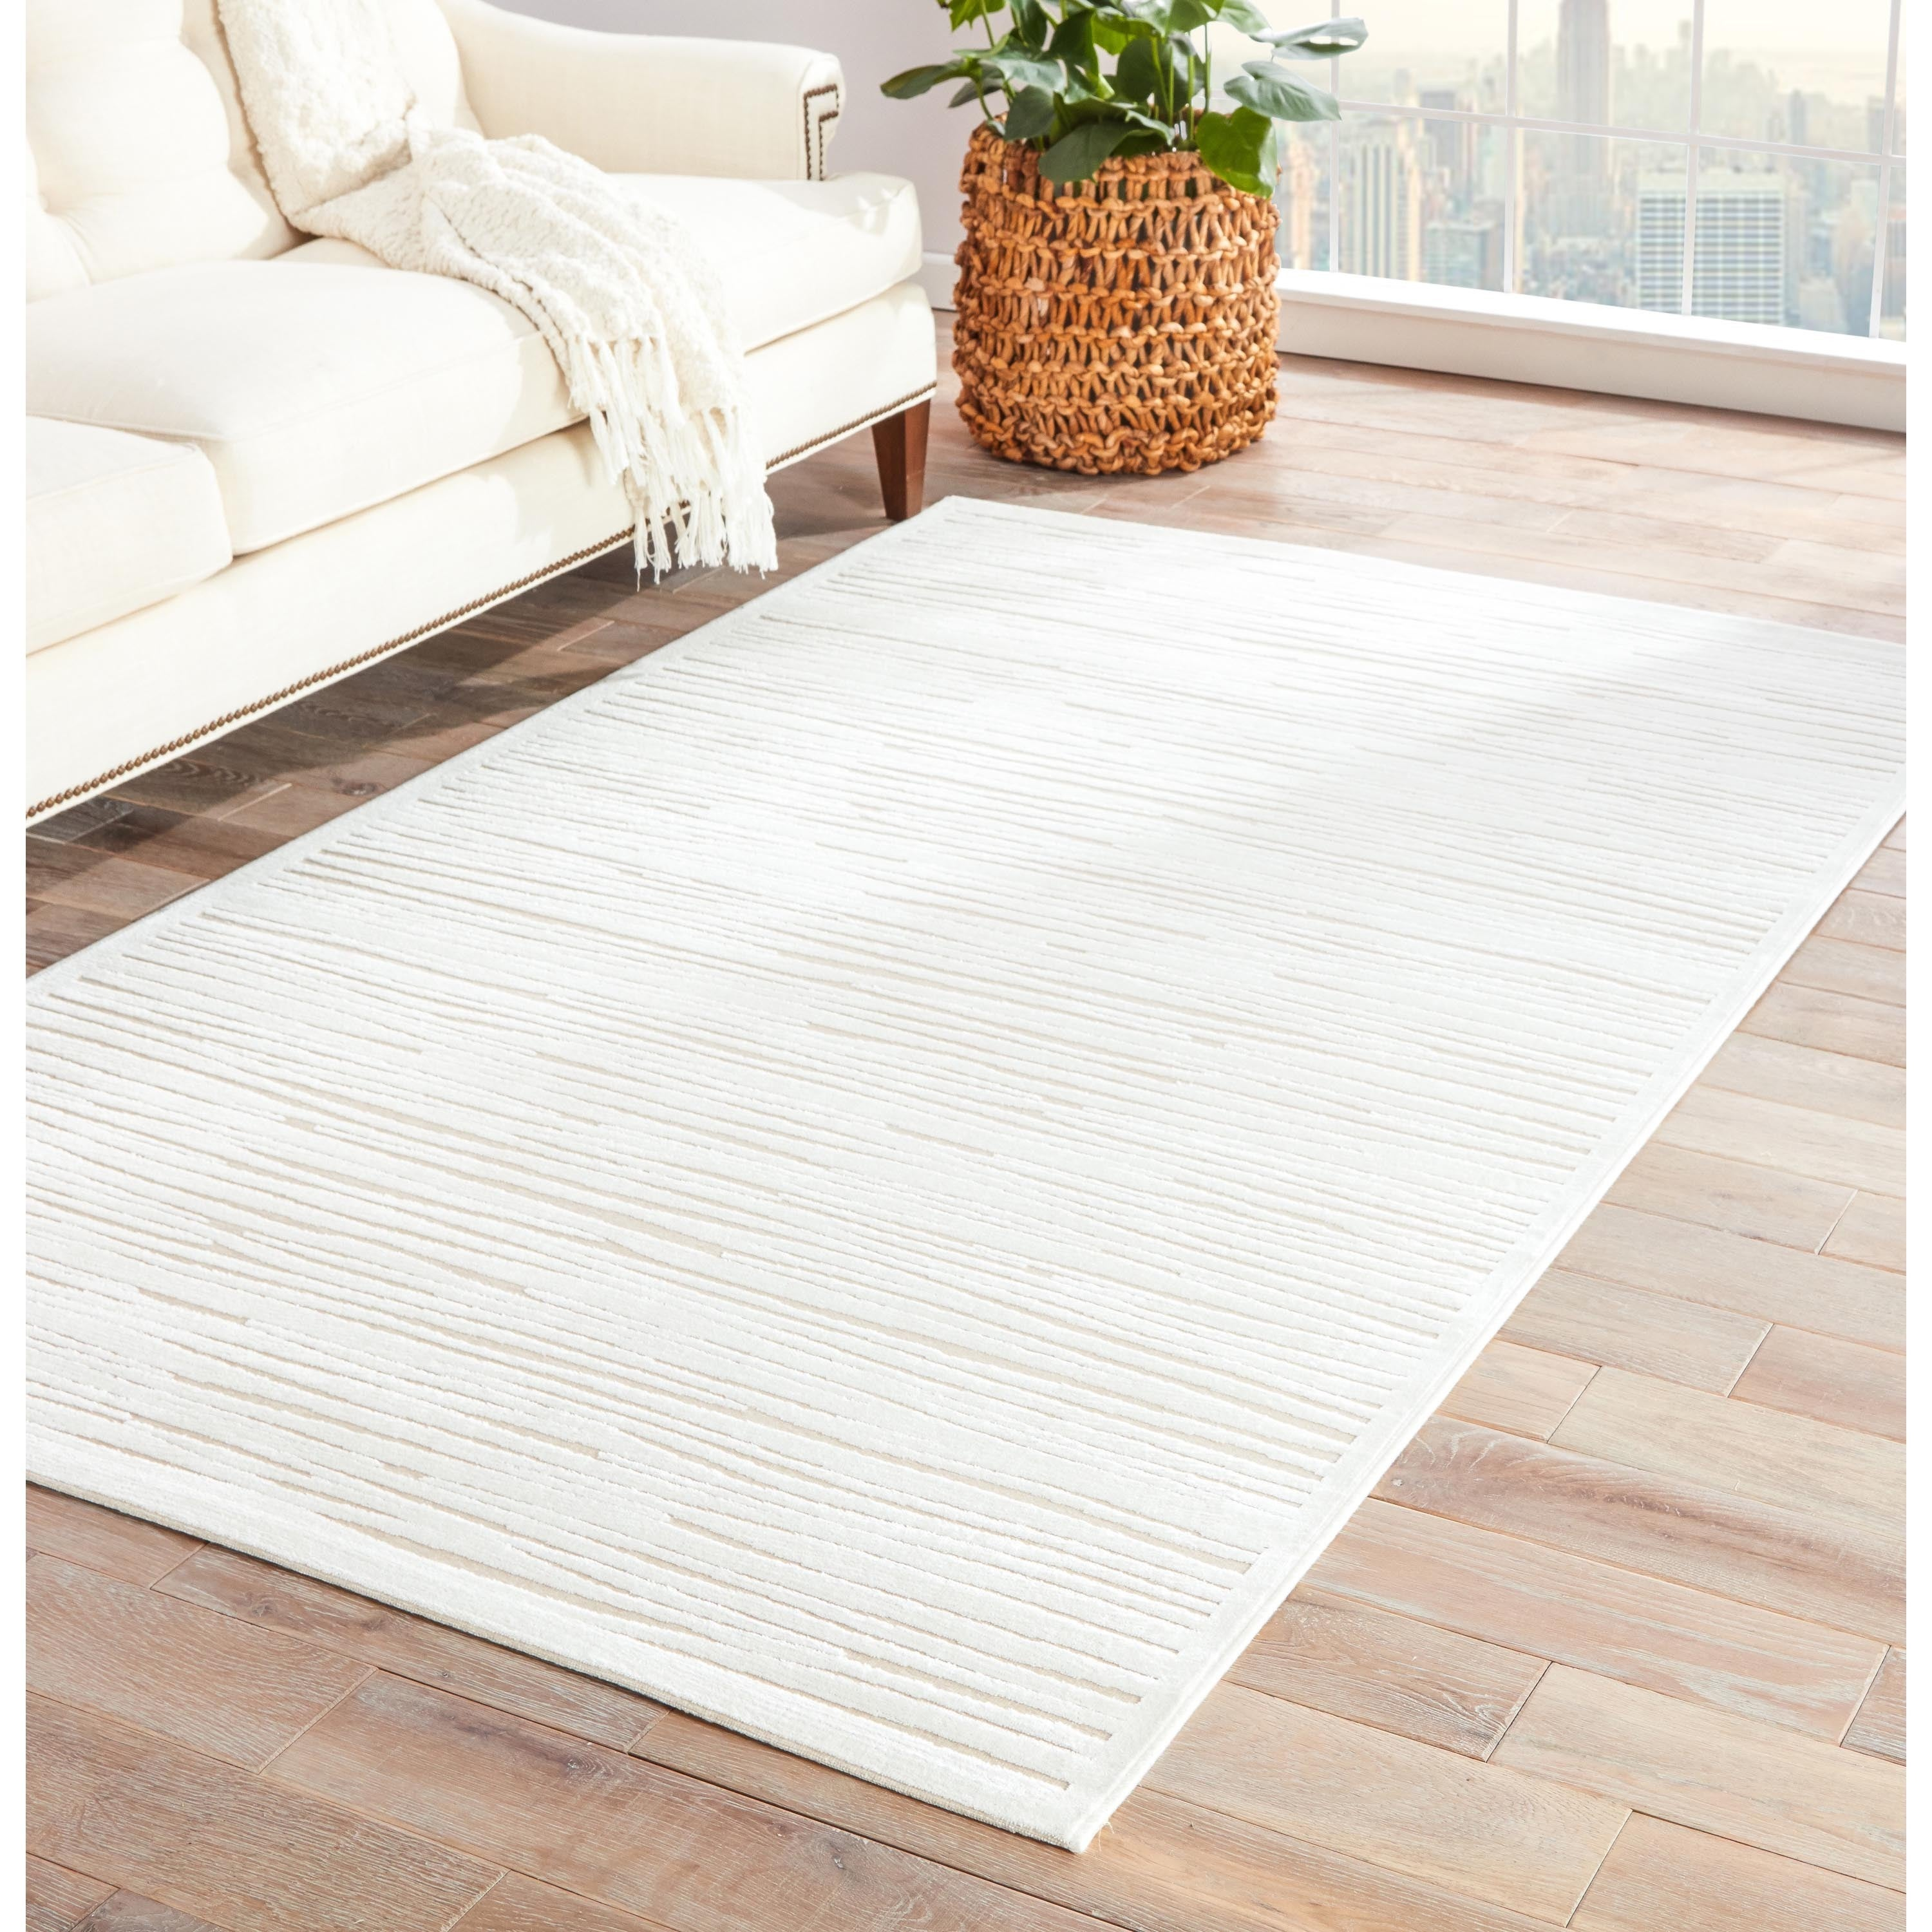 Shop Raya Abstract White Area Rug 9 X 12 8 10 X 11 9 On